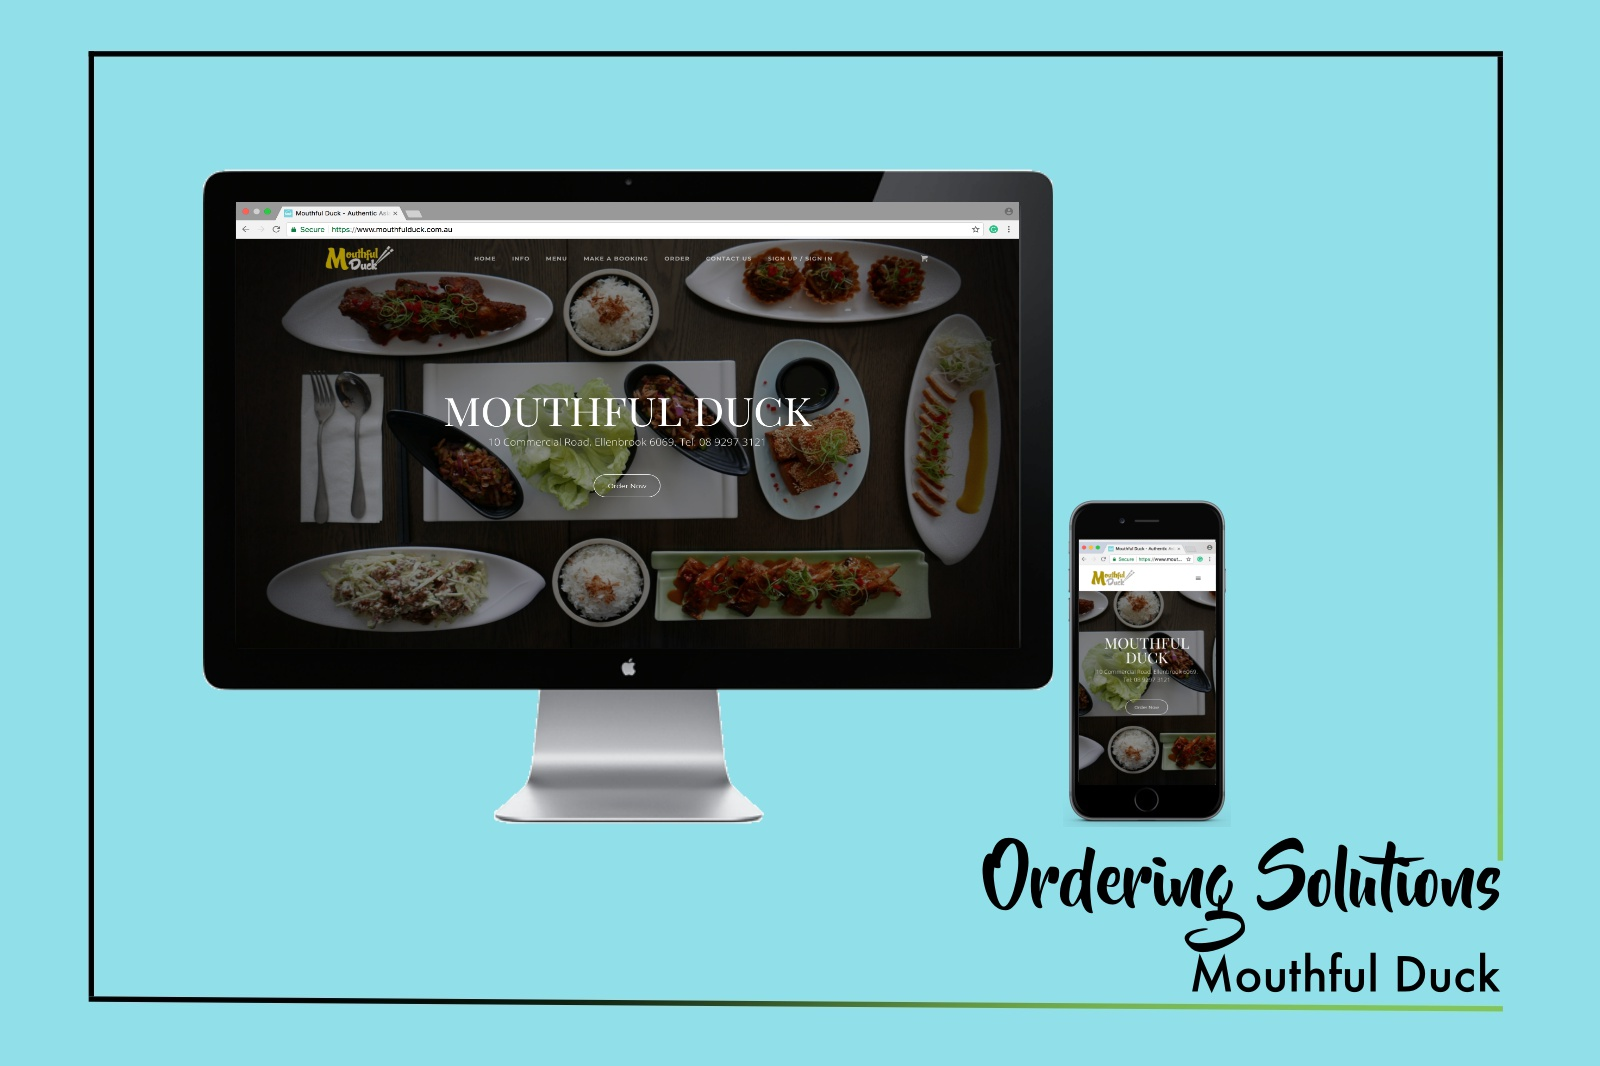 MOUTHFUL DUCK WEBSITE